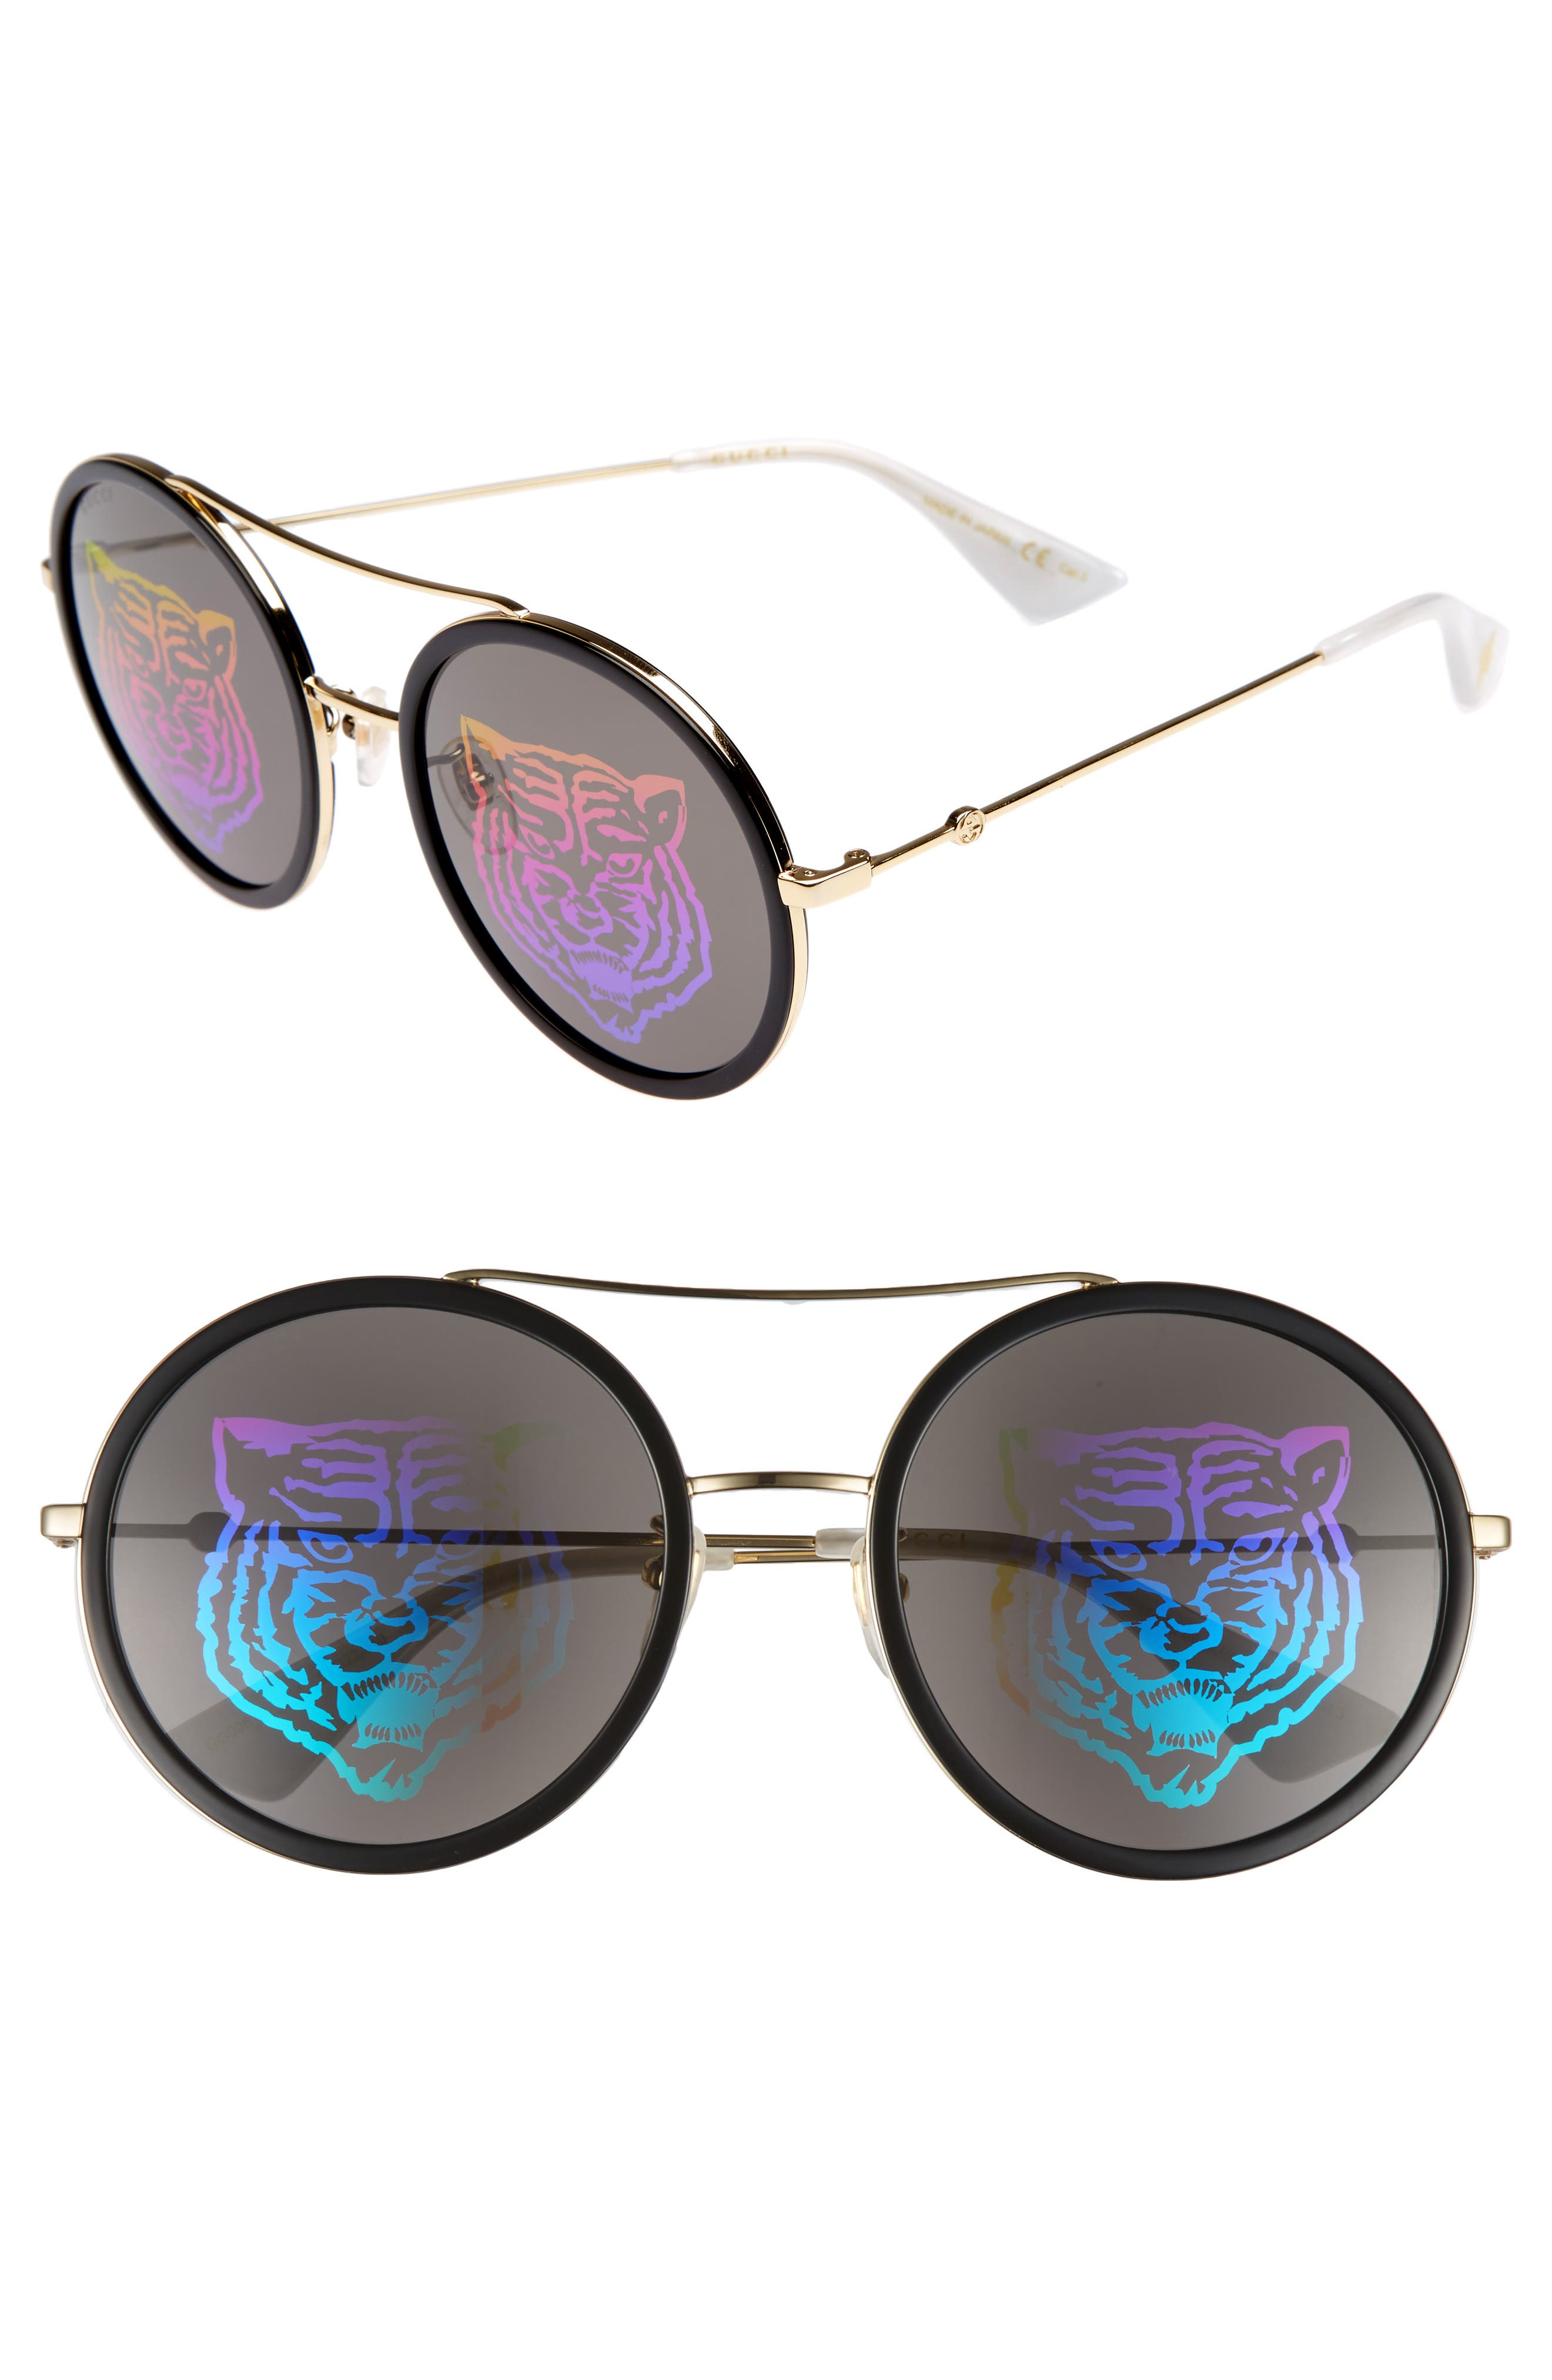 56mm Round Mirrored Aviator Sunglasses,                         Main,                         color, Gold/ Pearl